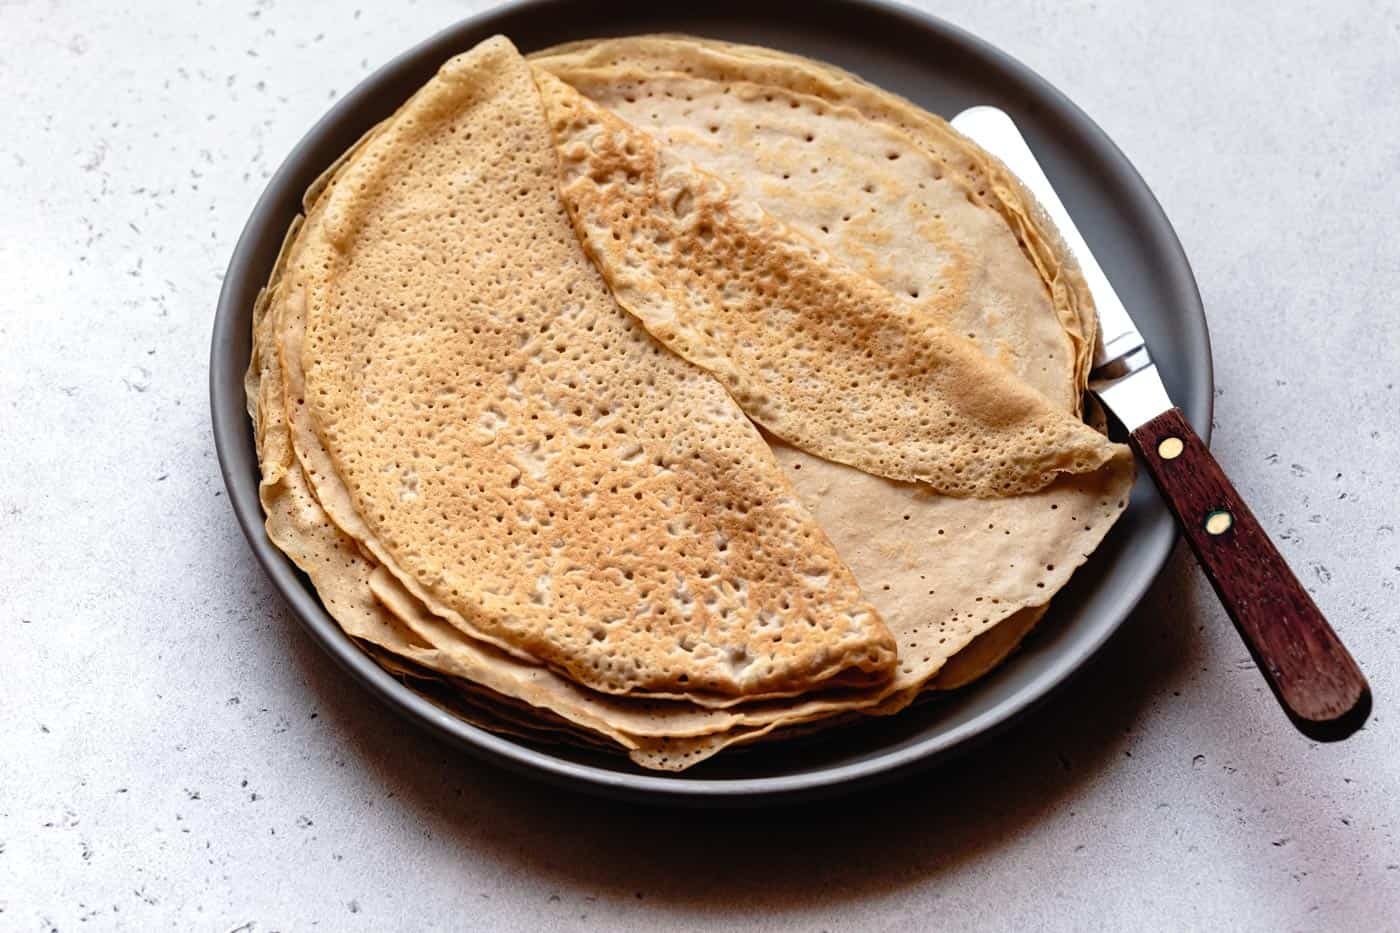 dairy-free almond milk crepes stacked on a plate